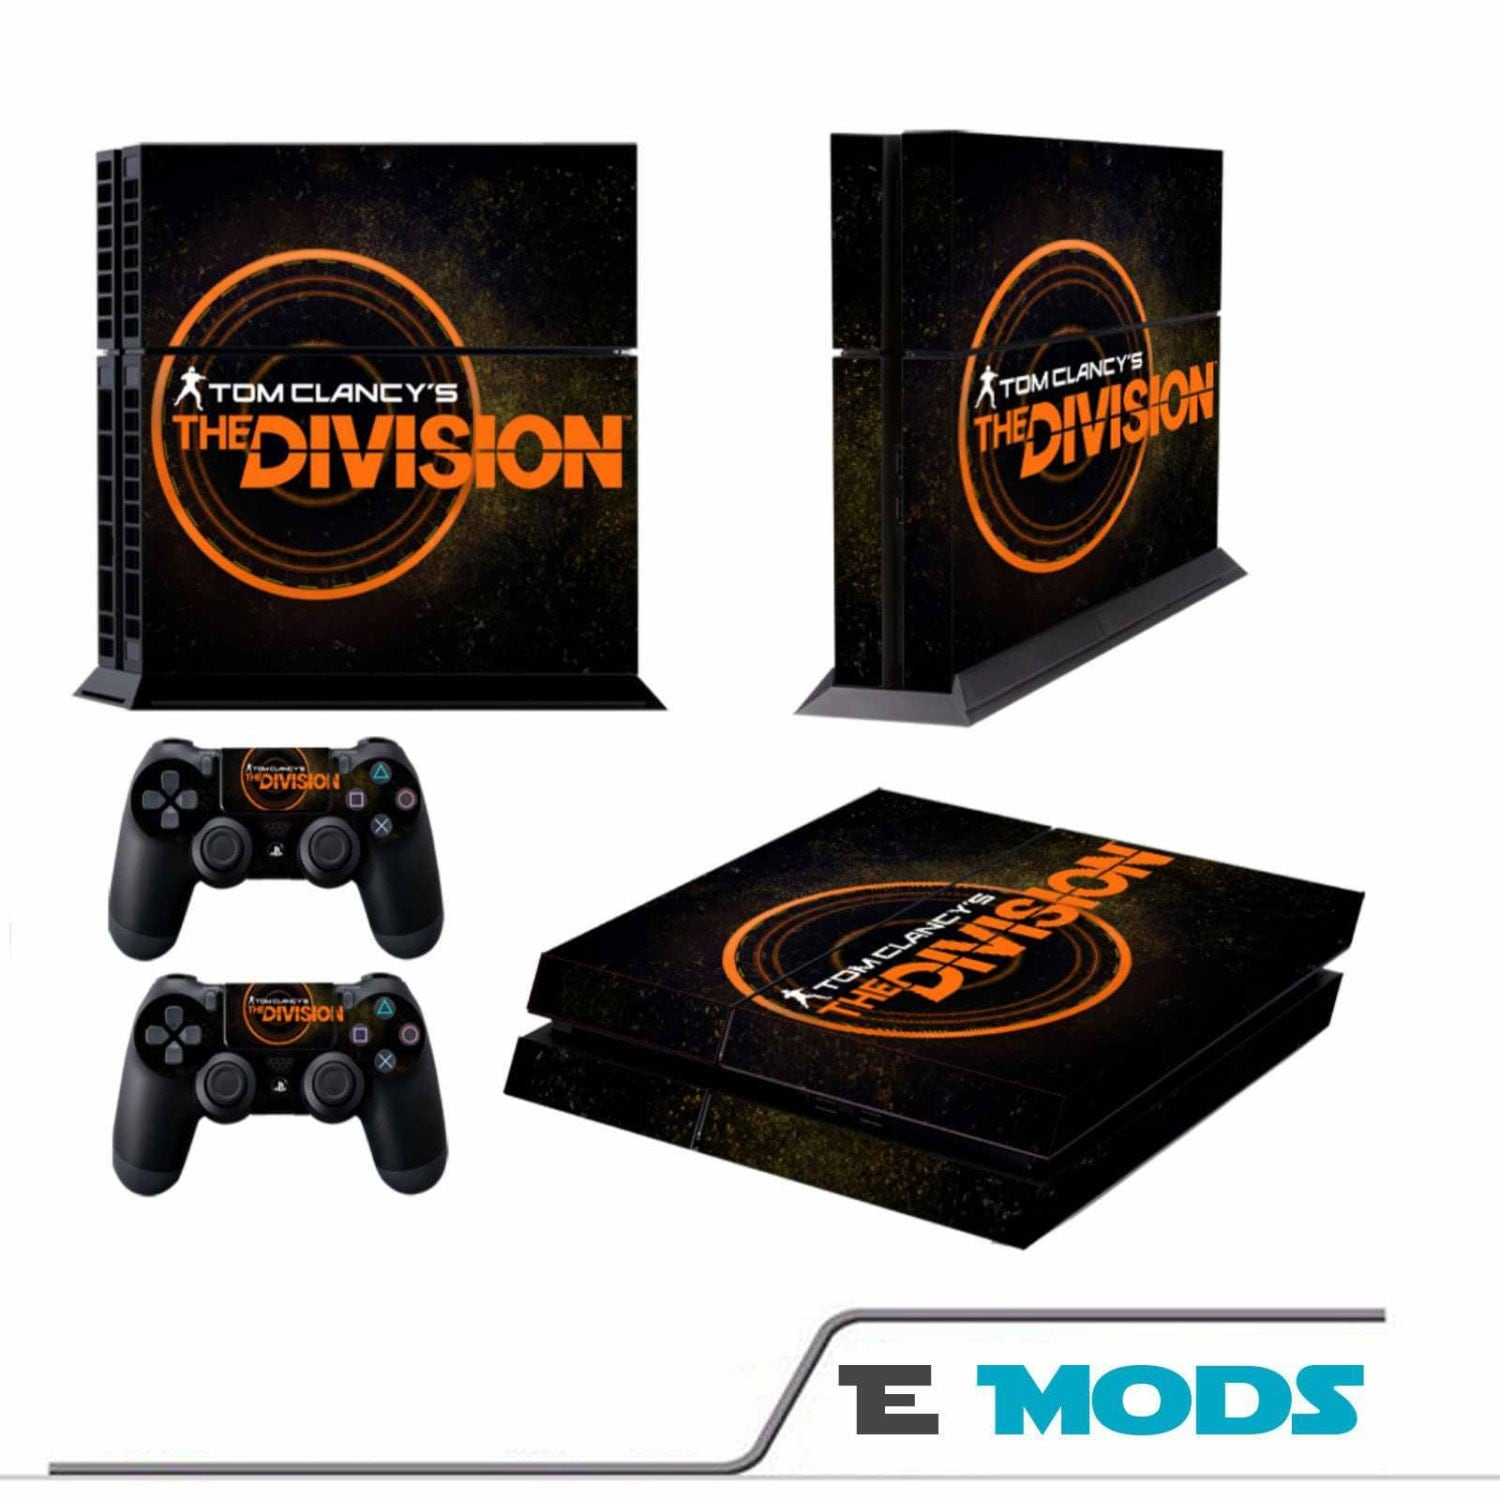 The Division Playstation 4 PS4 Console Skin Vinyl Graphic decal  2 controller stickers